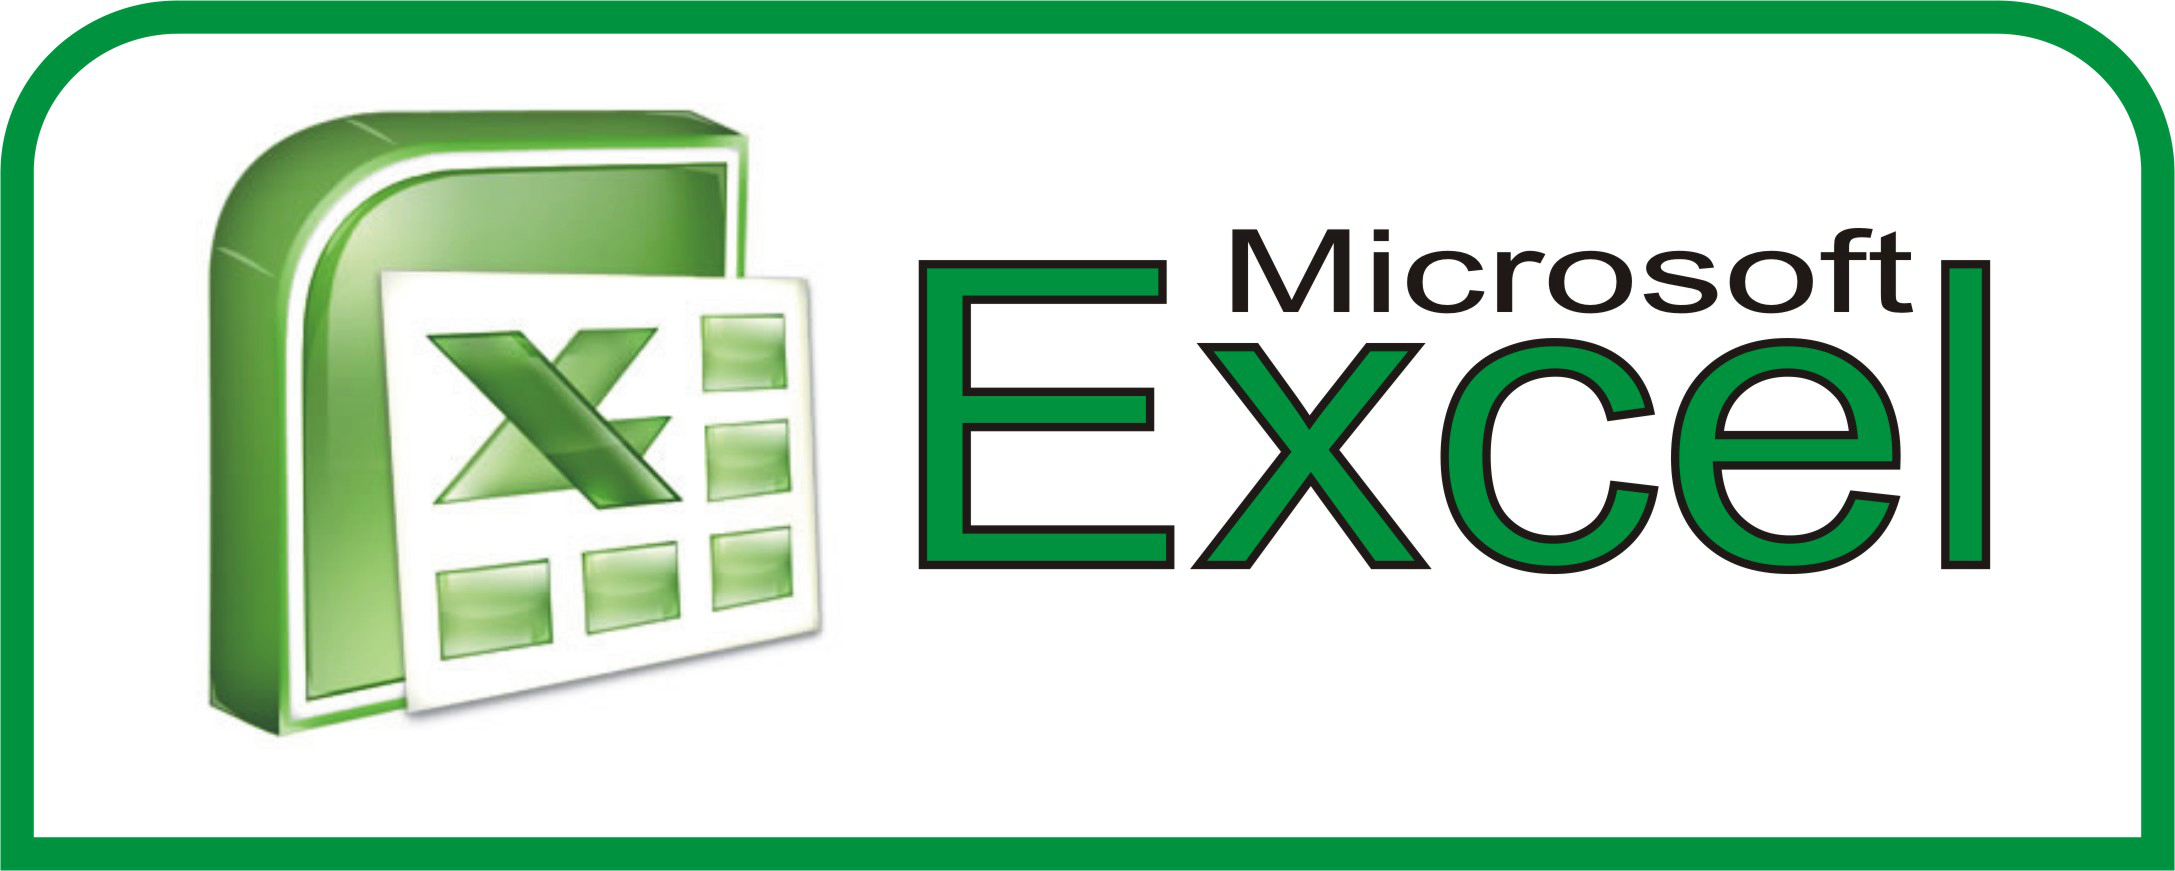 Ediblewildsus  Wonderful  Excel Shortcuts You Probably Didnt Know About  Techdissected With Exquisite Online Excel  Besides How To Make Bar Chart In Excel Furthermore Loan Payment Formula Excel With Agreeable Valuation Excel Template Also Create Excel Addin In Addition Insert Email Into Excel And Excel  Pivot Table Calculated Field As Well As Multiple Filters Excel Additionally Preparation Of Balance Sheet In Excel From Techdissectedcom With Ediblewildsus  Exquisite  Excel Shortcuts You Probably Didnt Know About  Techdissected With Agreeable Online Excel  Besides How To Make Bar Chart In Excel Furthermore Loan Payment Formula Excel And Wonderful Valuation Excel Template Also Create Excel Addin In Addition Insert Email Into Excel From Techdissectedcom